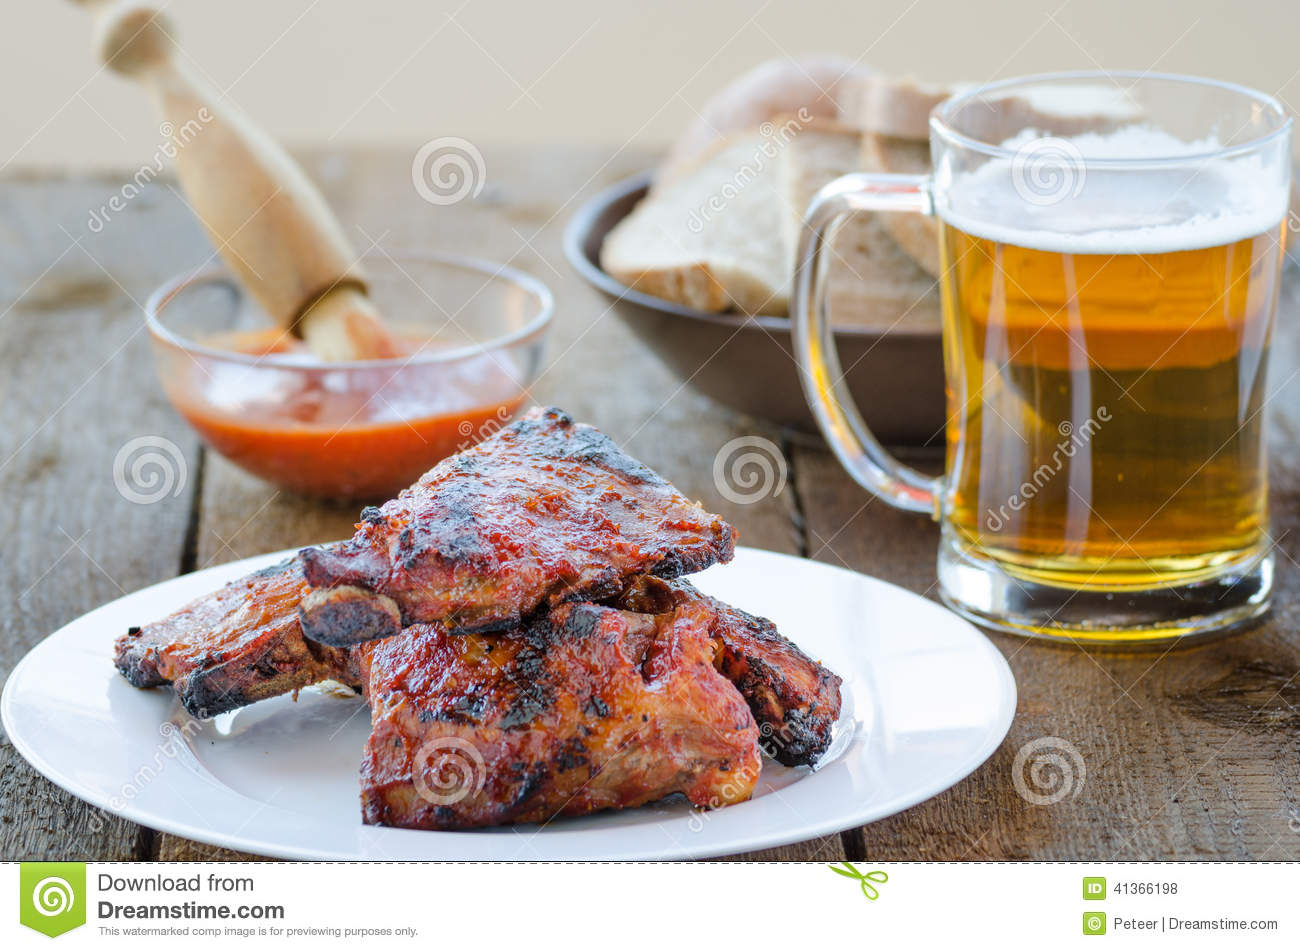 Grille Spareribs På Gasgrill : Spareribs on grill with hot marinade czech beer stock photo